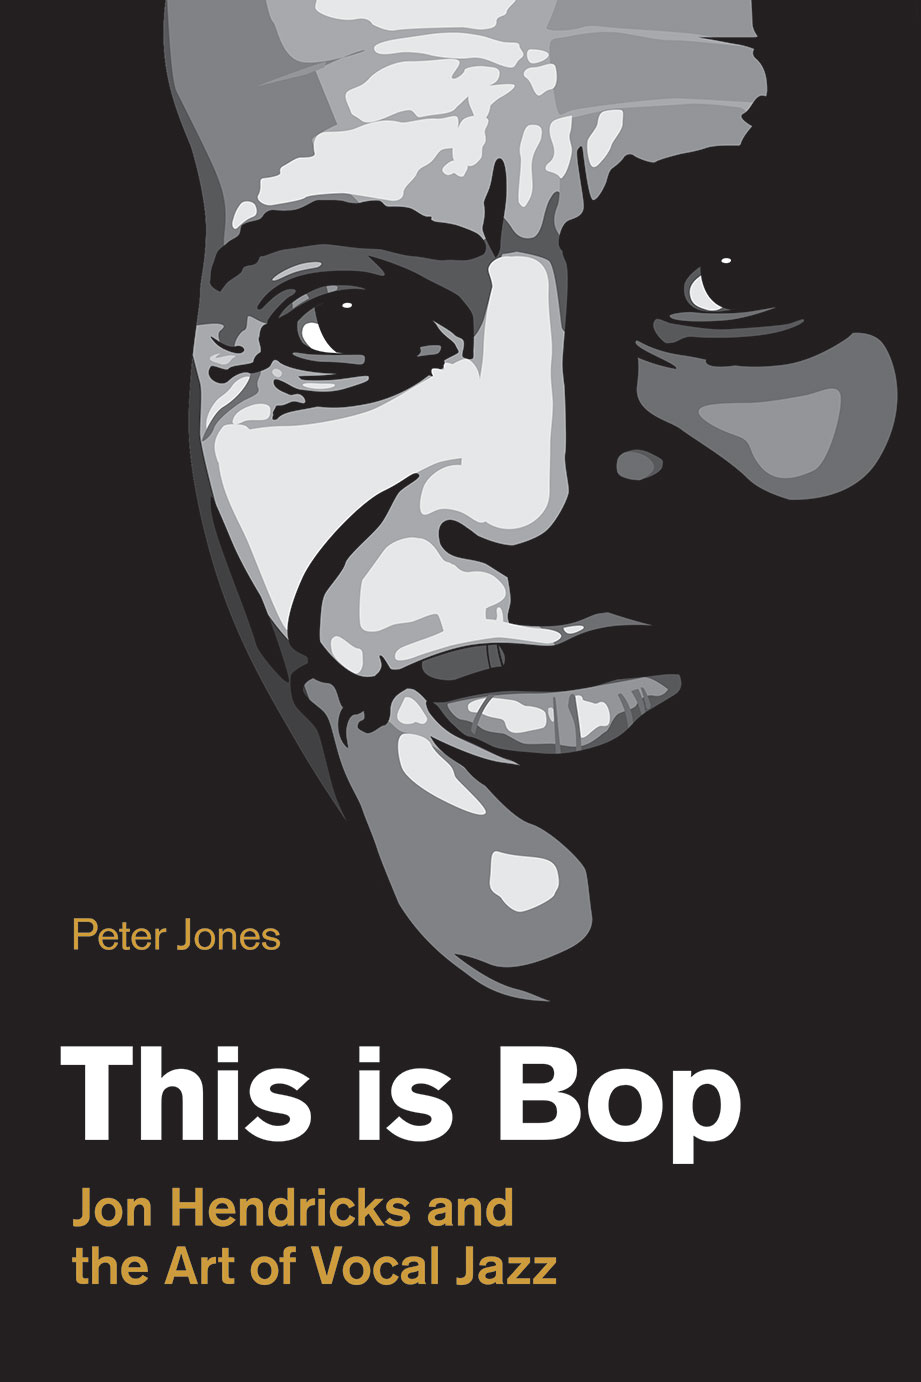 This is Bop - Jon Hendricks and the Art of Vocal Jazz - Peter Jones